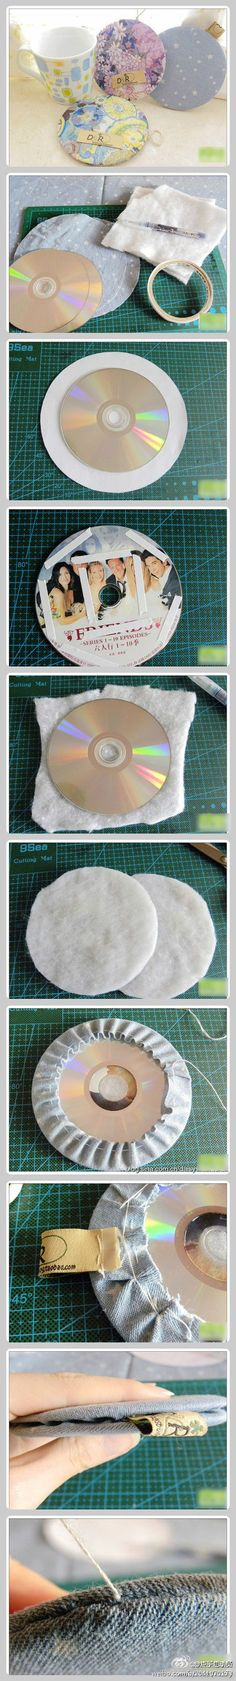 Recycle old CDs into coasters <3